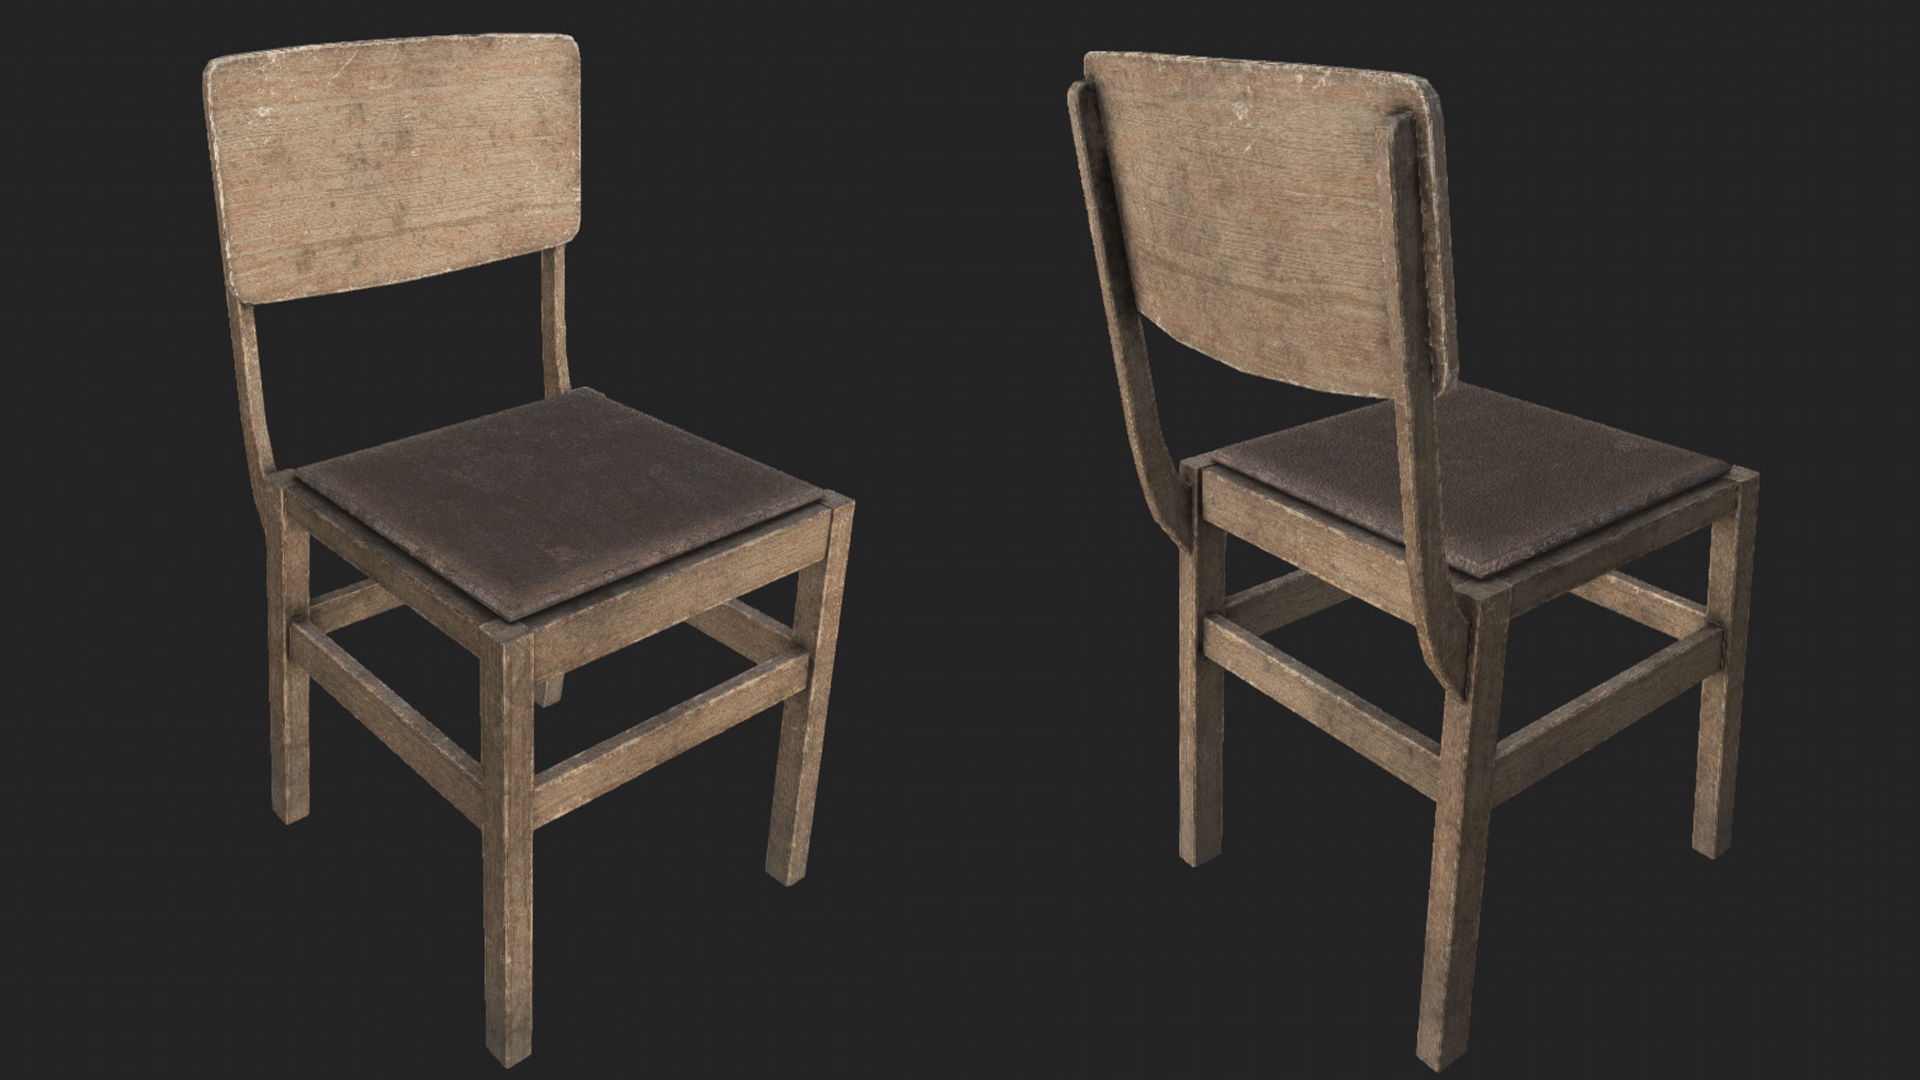 old wood chairs best big and tall beach chair 3d asset wooden 2 pbr cgtrader model low poly max obj mtl 3ds fbx dae